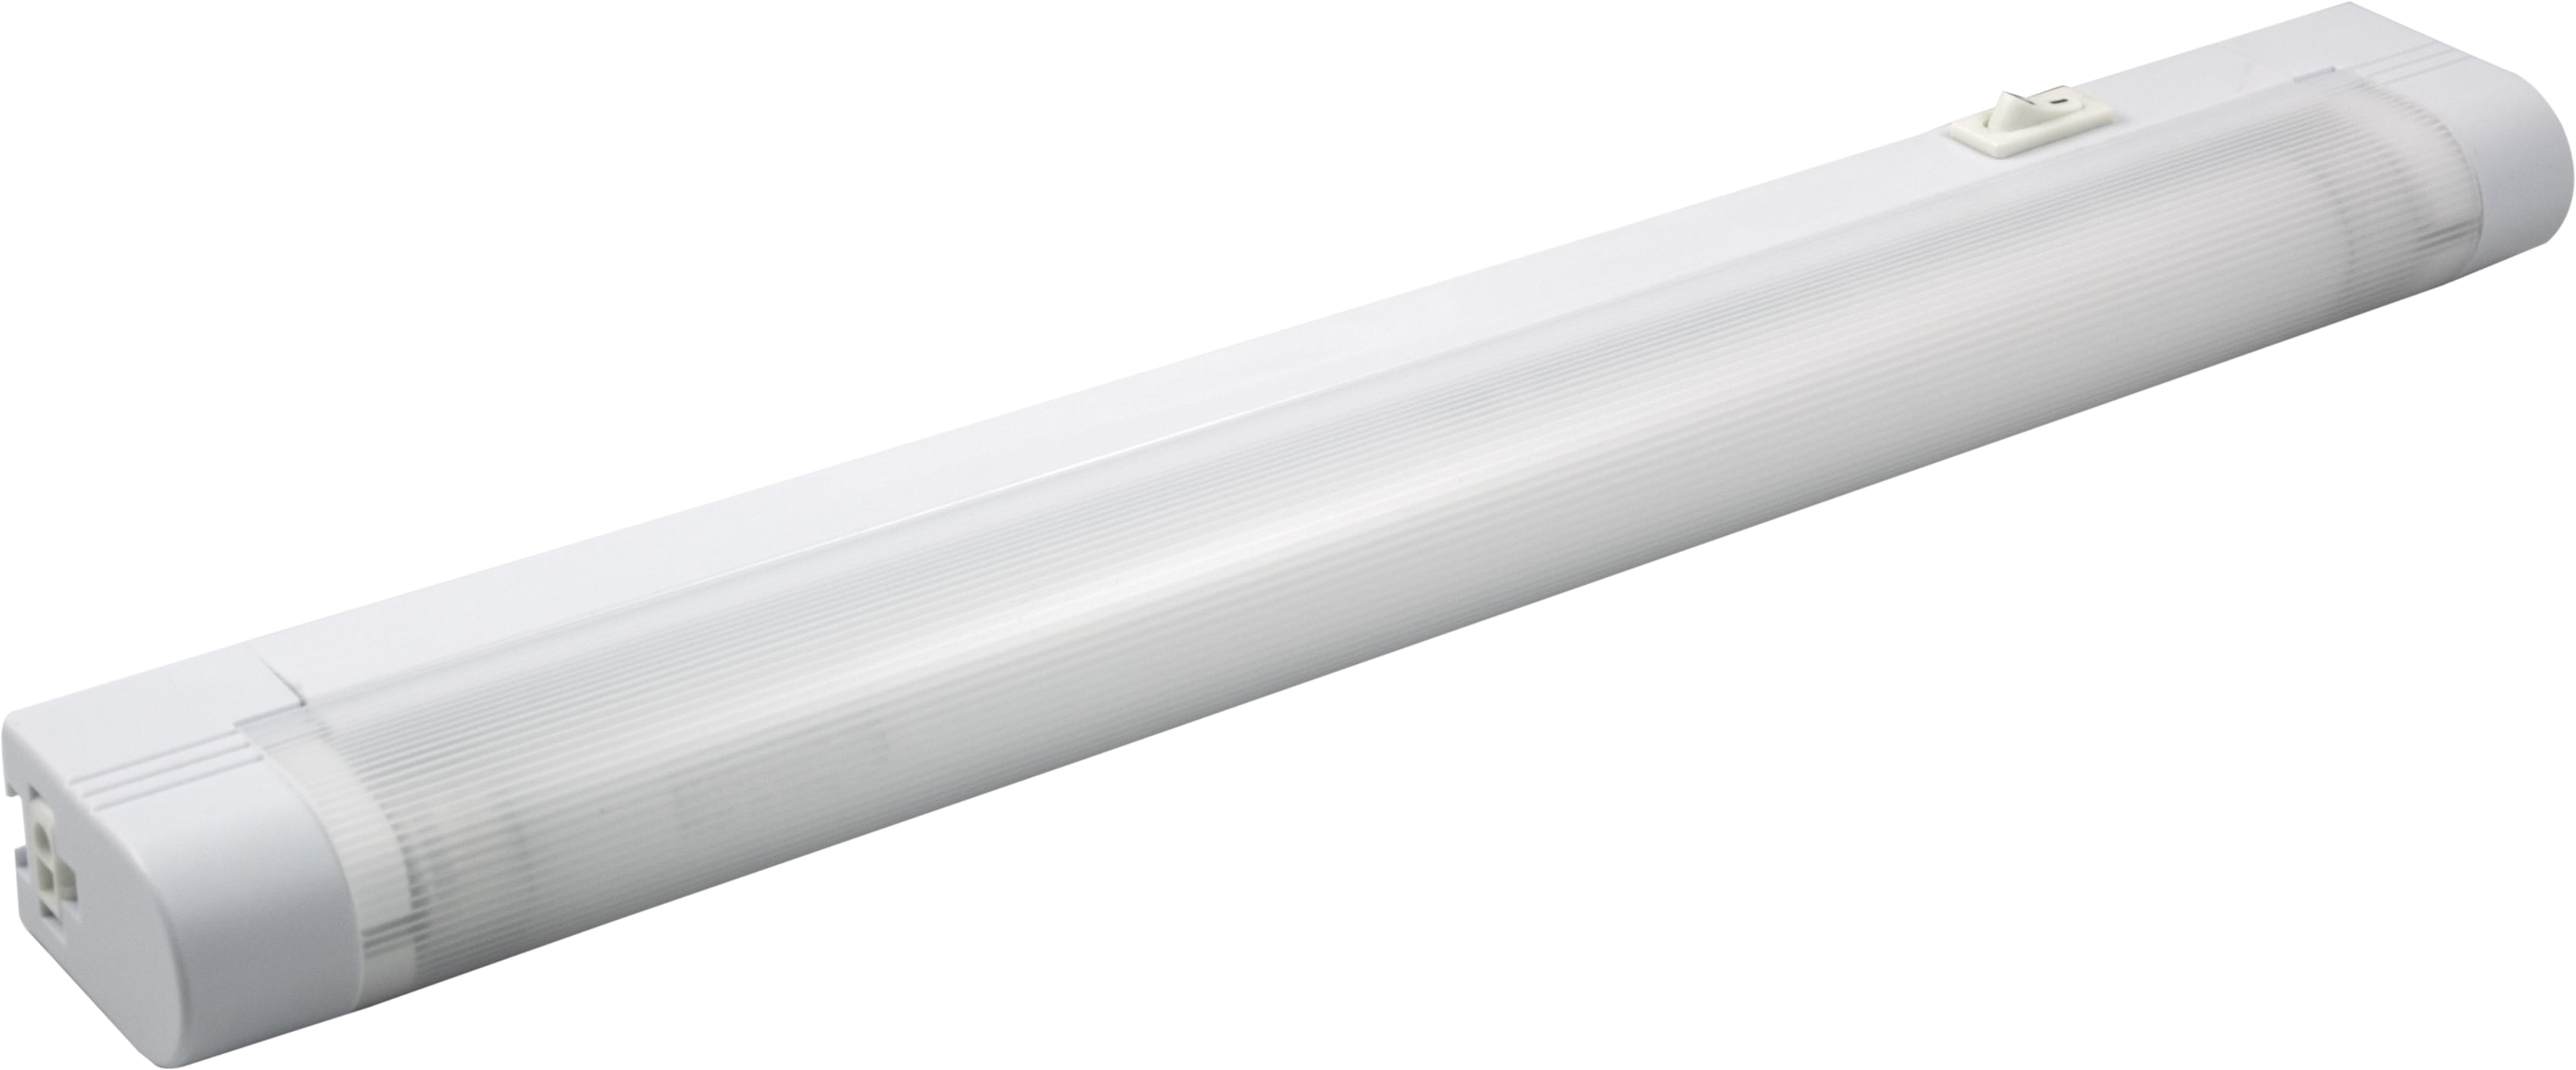 GE Slim Line 14-Inch Fluorescent Light Fixture, Plug-In, Linkable, 10168 by Jasco Products Company, LLC